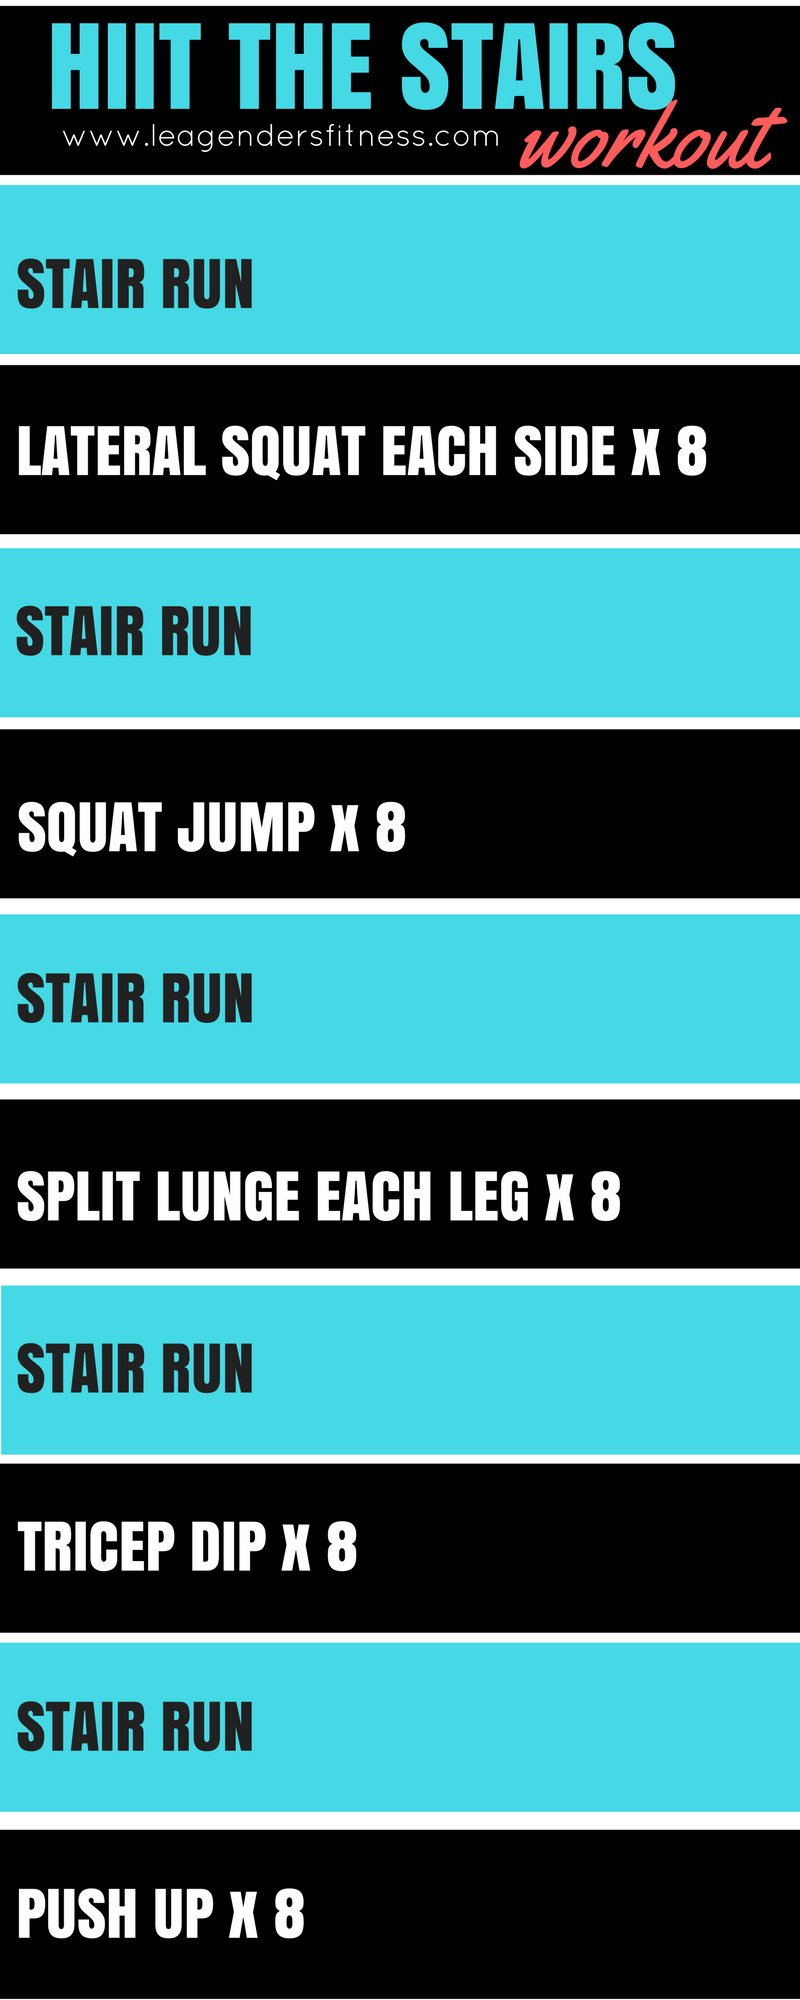 Download a FREE PDF of HIIT the stairs workout - no email address required. Just click and download.